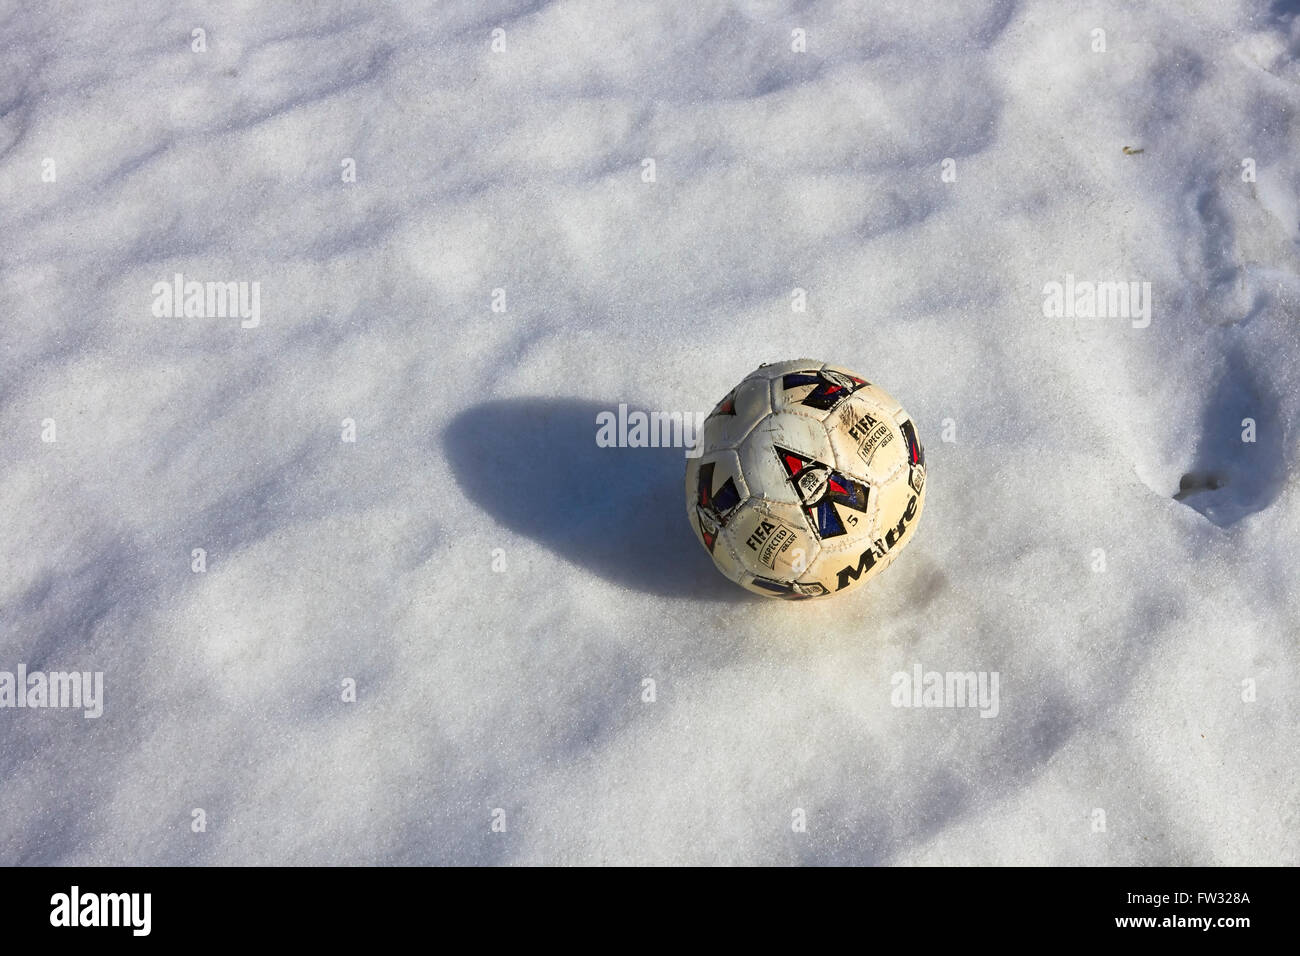 worn-out football on snow - Stock Image